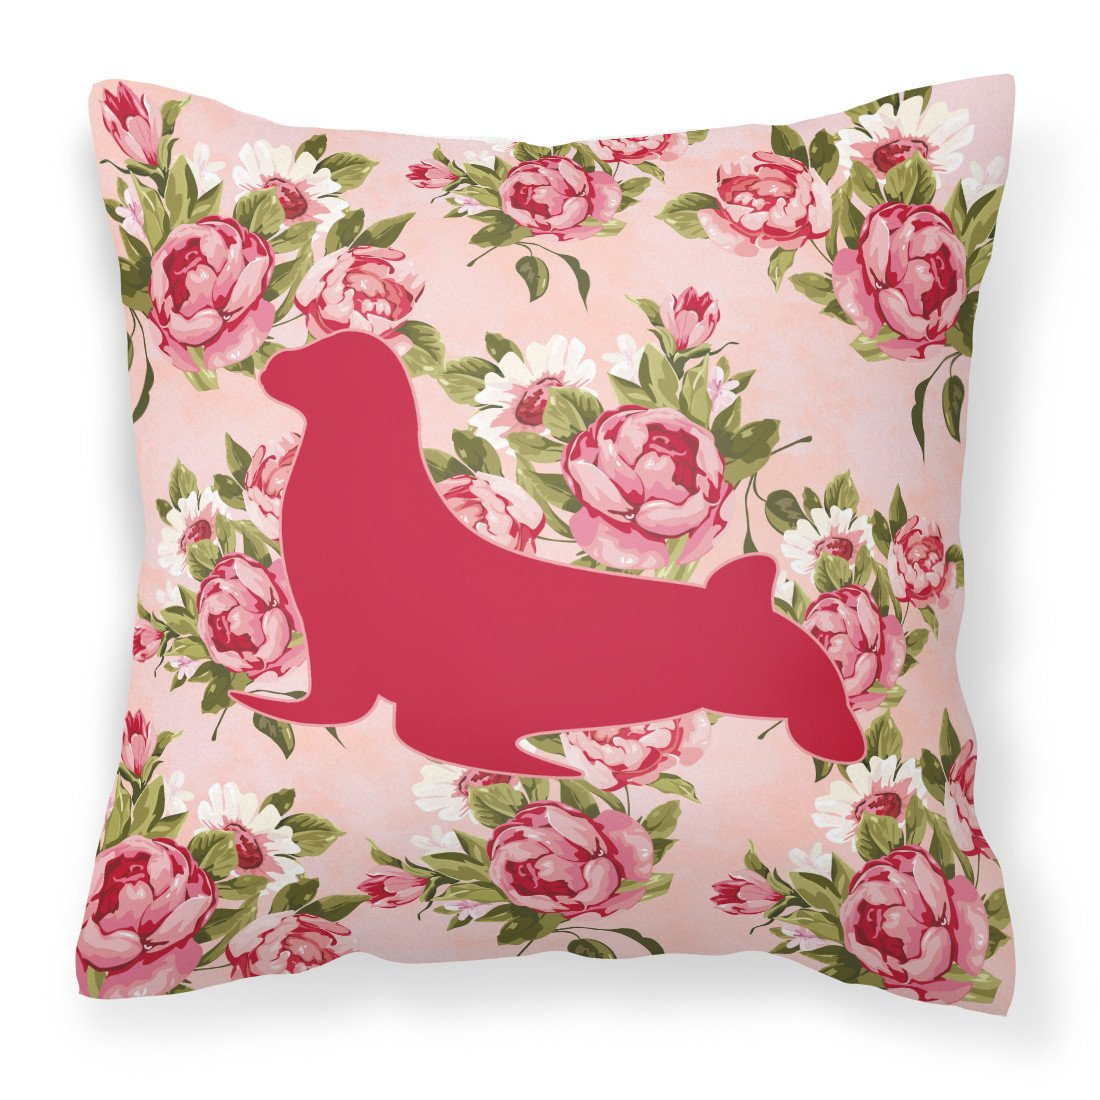 Seal Shabby Chic Pink Roses  Fabric Decorative Pillow BB1027-RS-PK-PW1414 by Caroline's Treasures